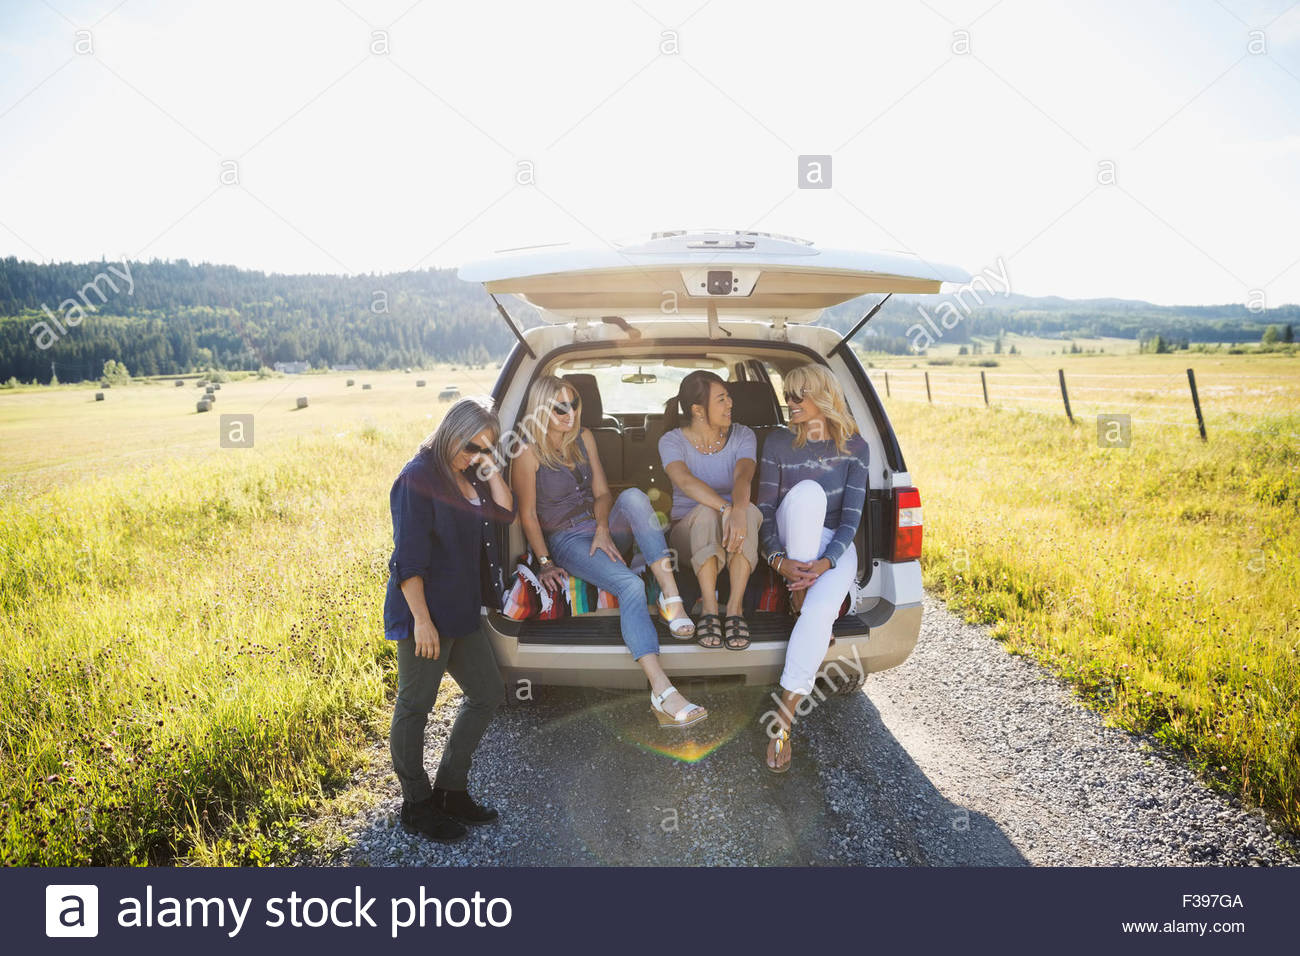 Women sitting in hatchback car sunny rural road - Stock Image